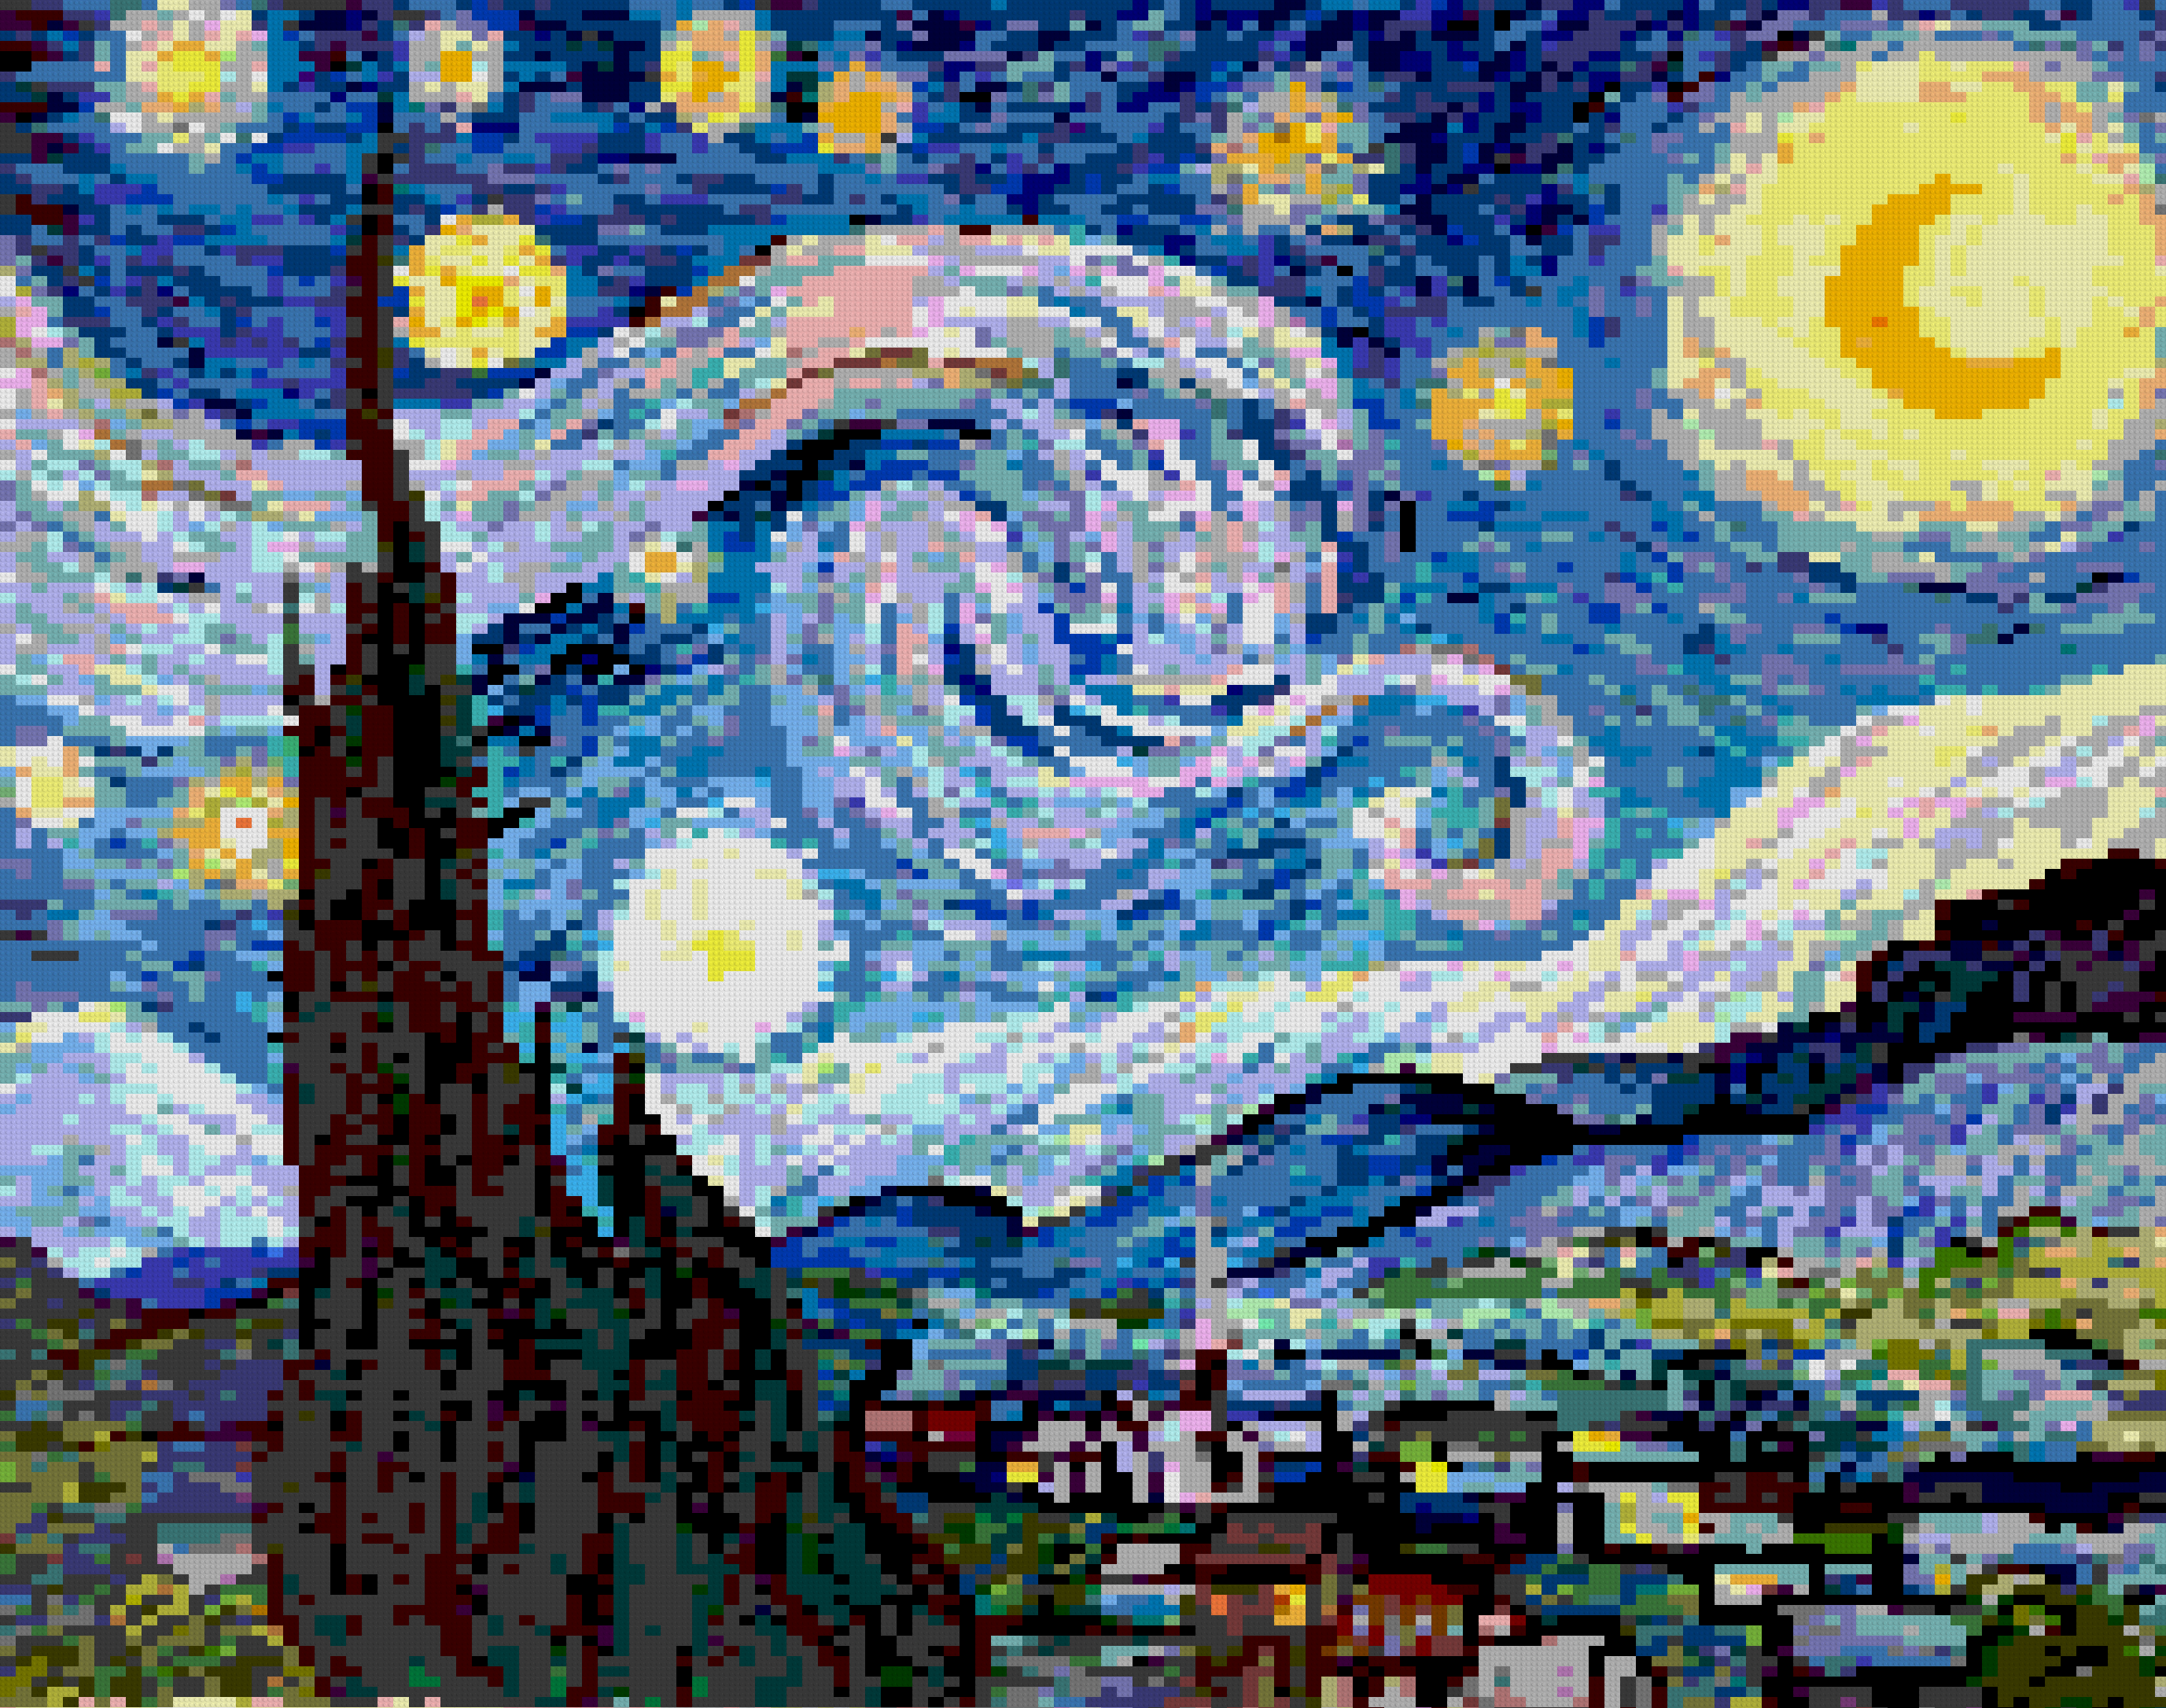 starry_night_lego